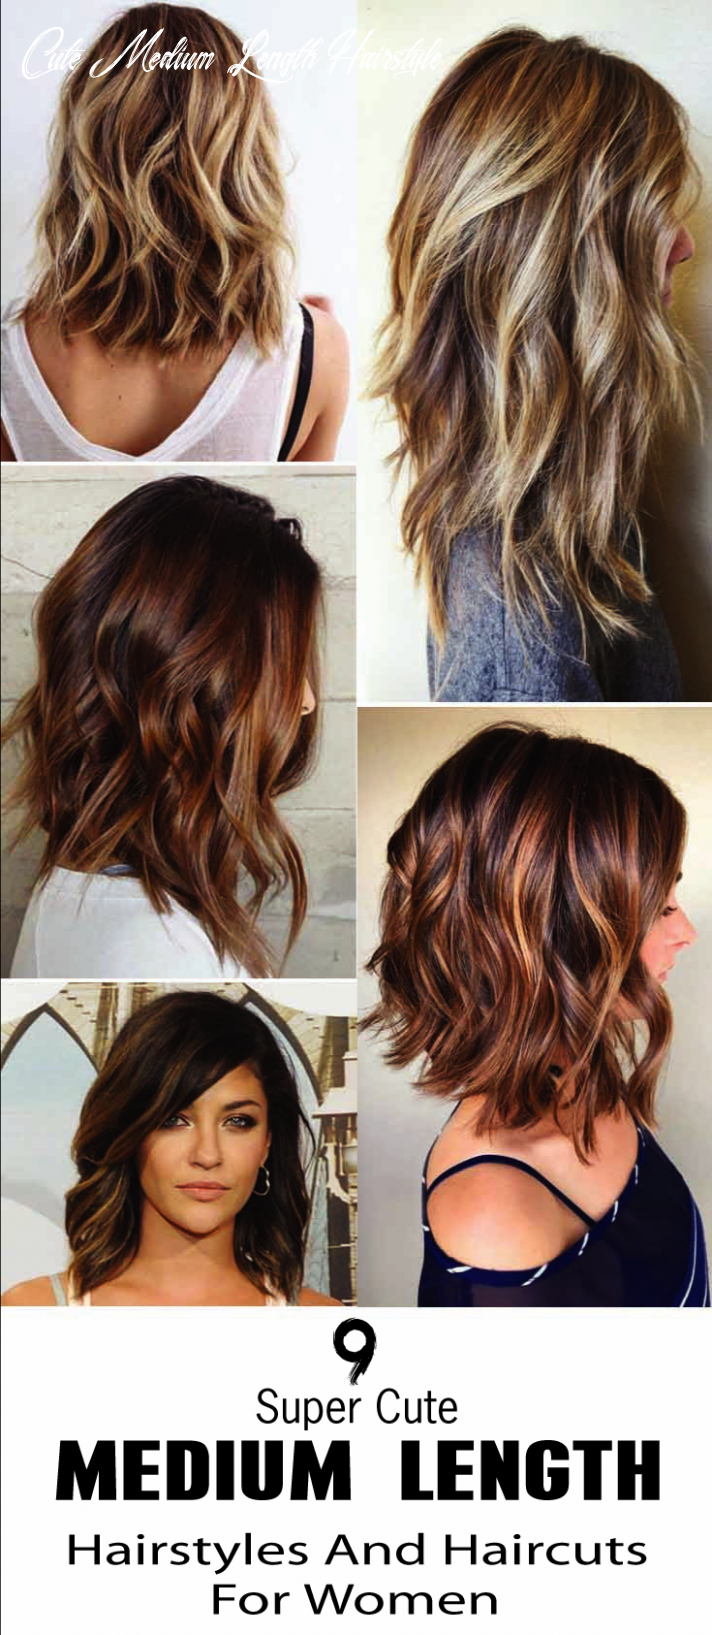 12 Super Cute Medium Length Hairstyles And Haircuts For Women ...